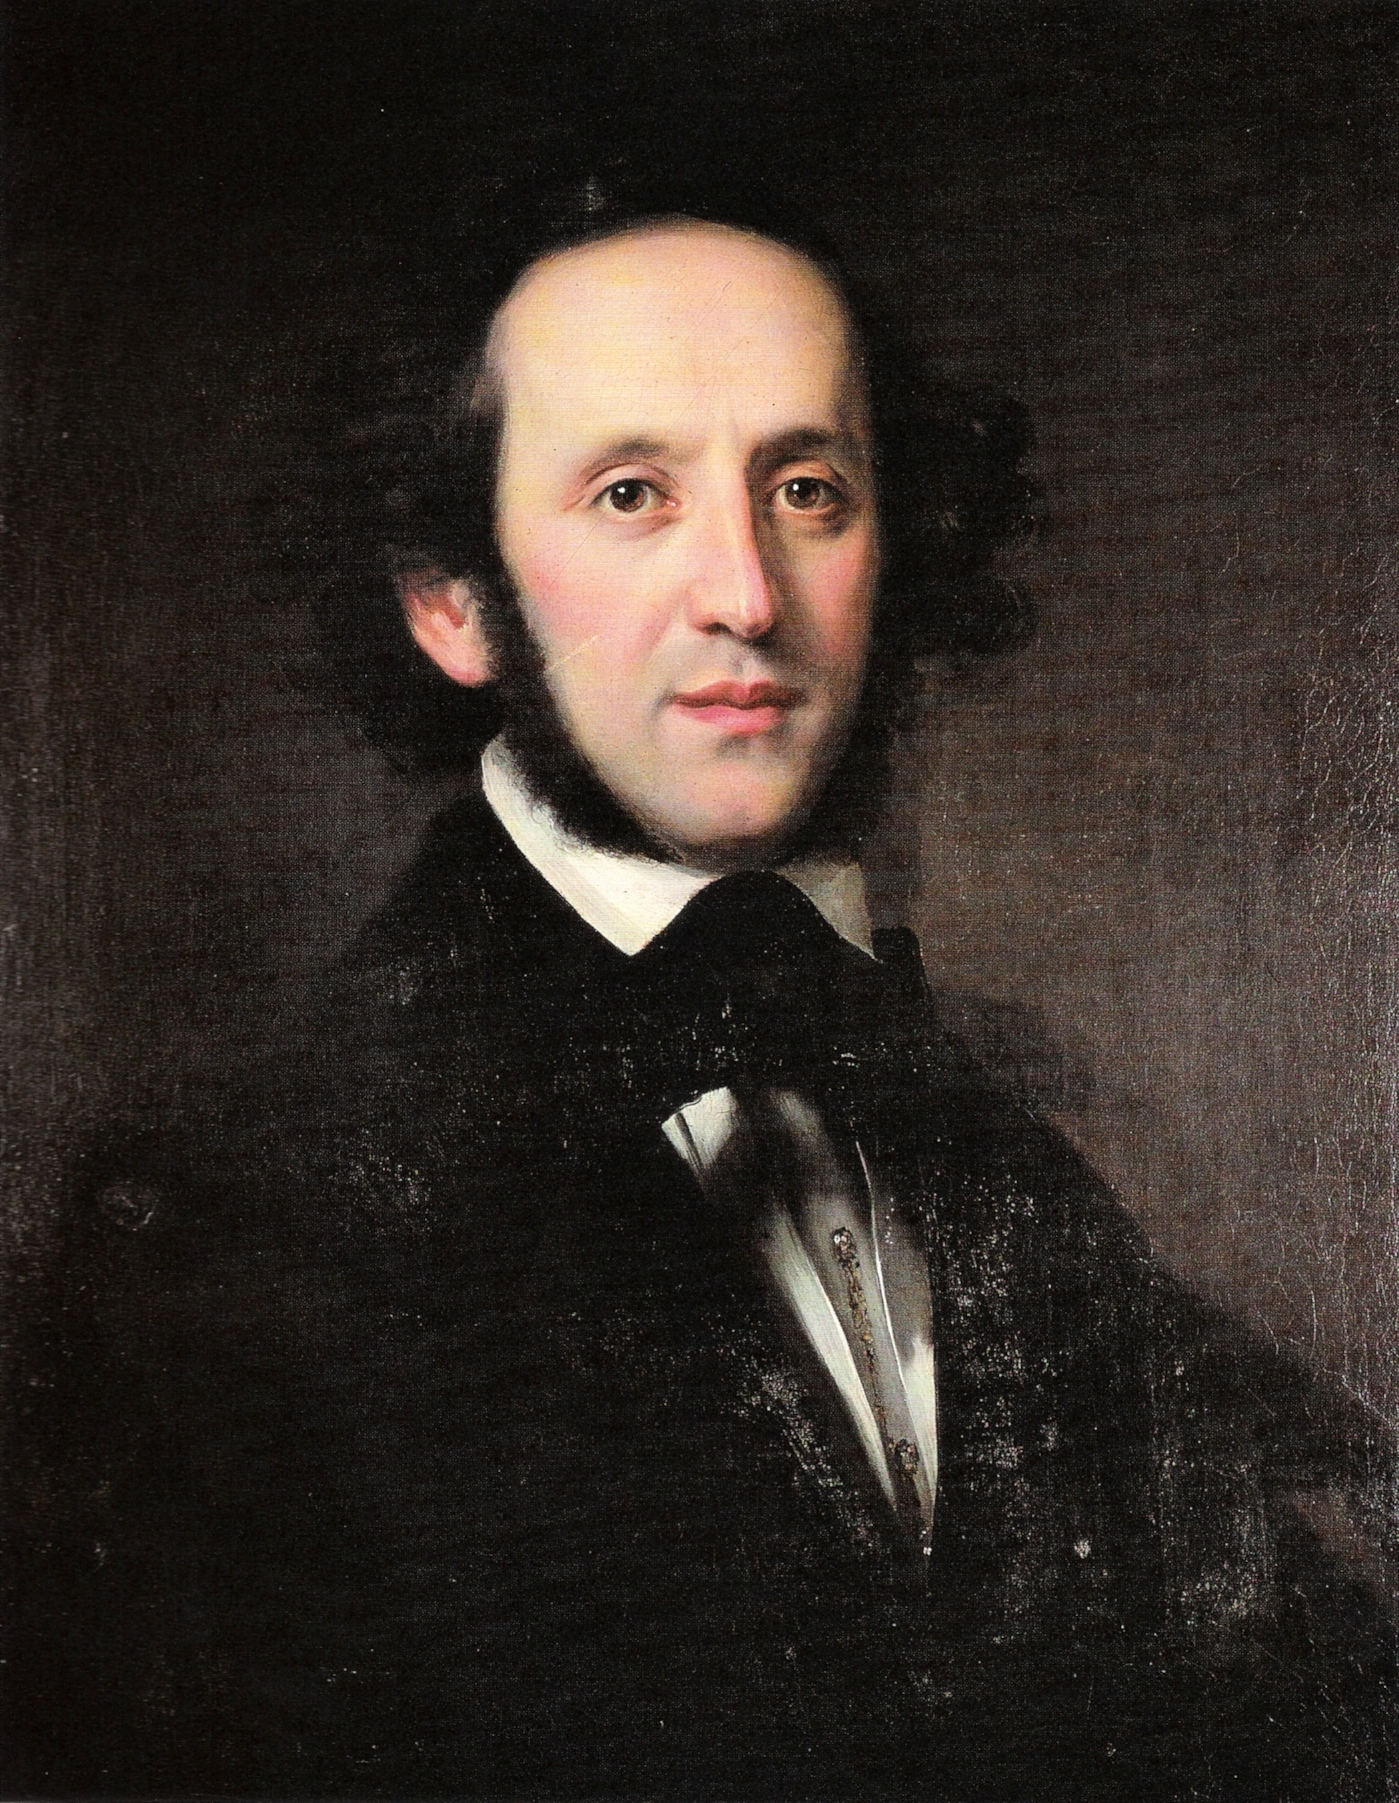 Portrait of Mendelssohn by the German [[painter